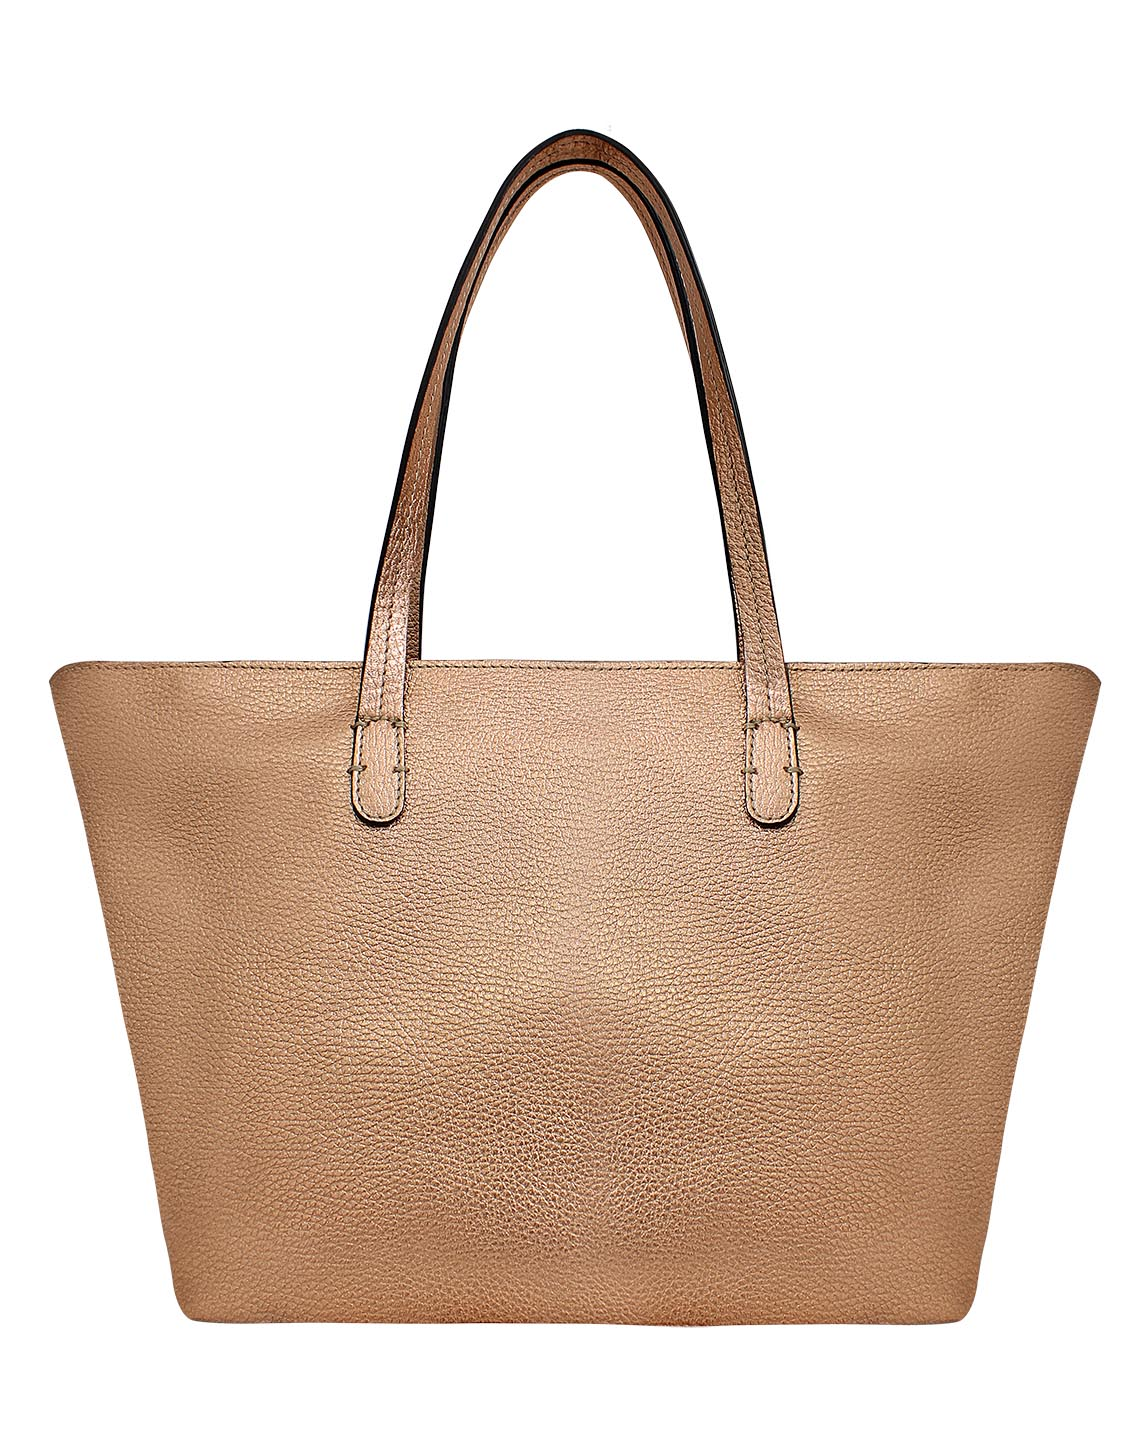 Cartera Tote Bags DS-2934 Color Cobre